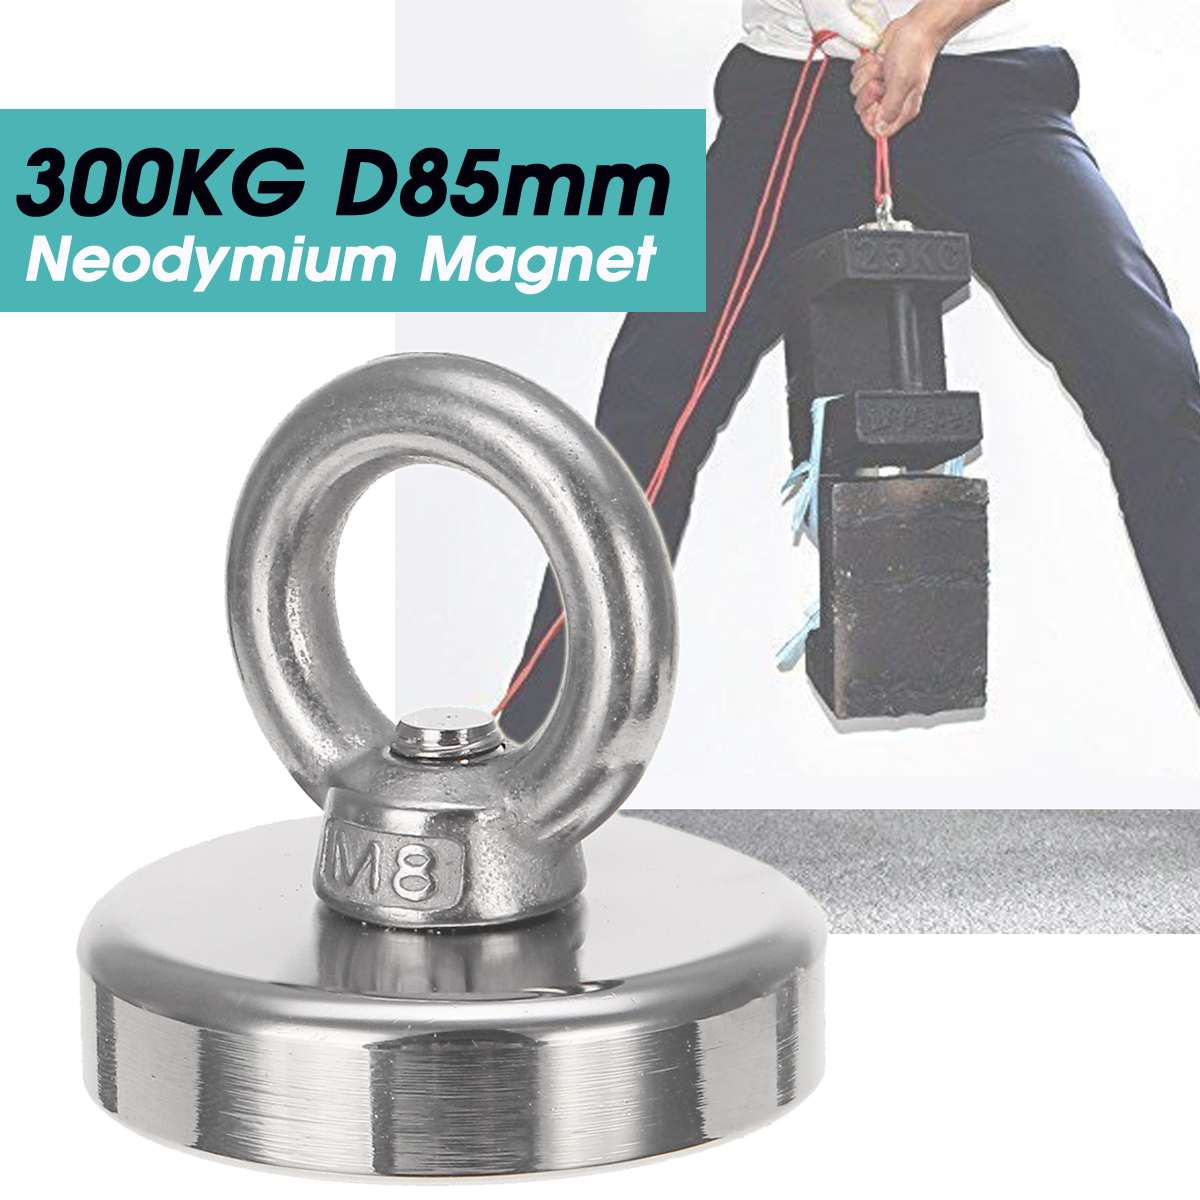 Super Strong D85mm 300KG Neodymium Fishing Diving Salvage Recovery Magnet For Detecting Metal Treasure Powerful Magnetic HolSuper Strong D85mm 300KG Neodymium Fishing Diving Salvage Recovery Magnet For Detecting Metal Treasure Powerful Magnetic Hol